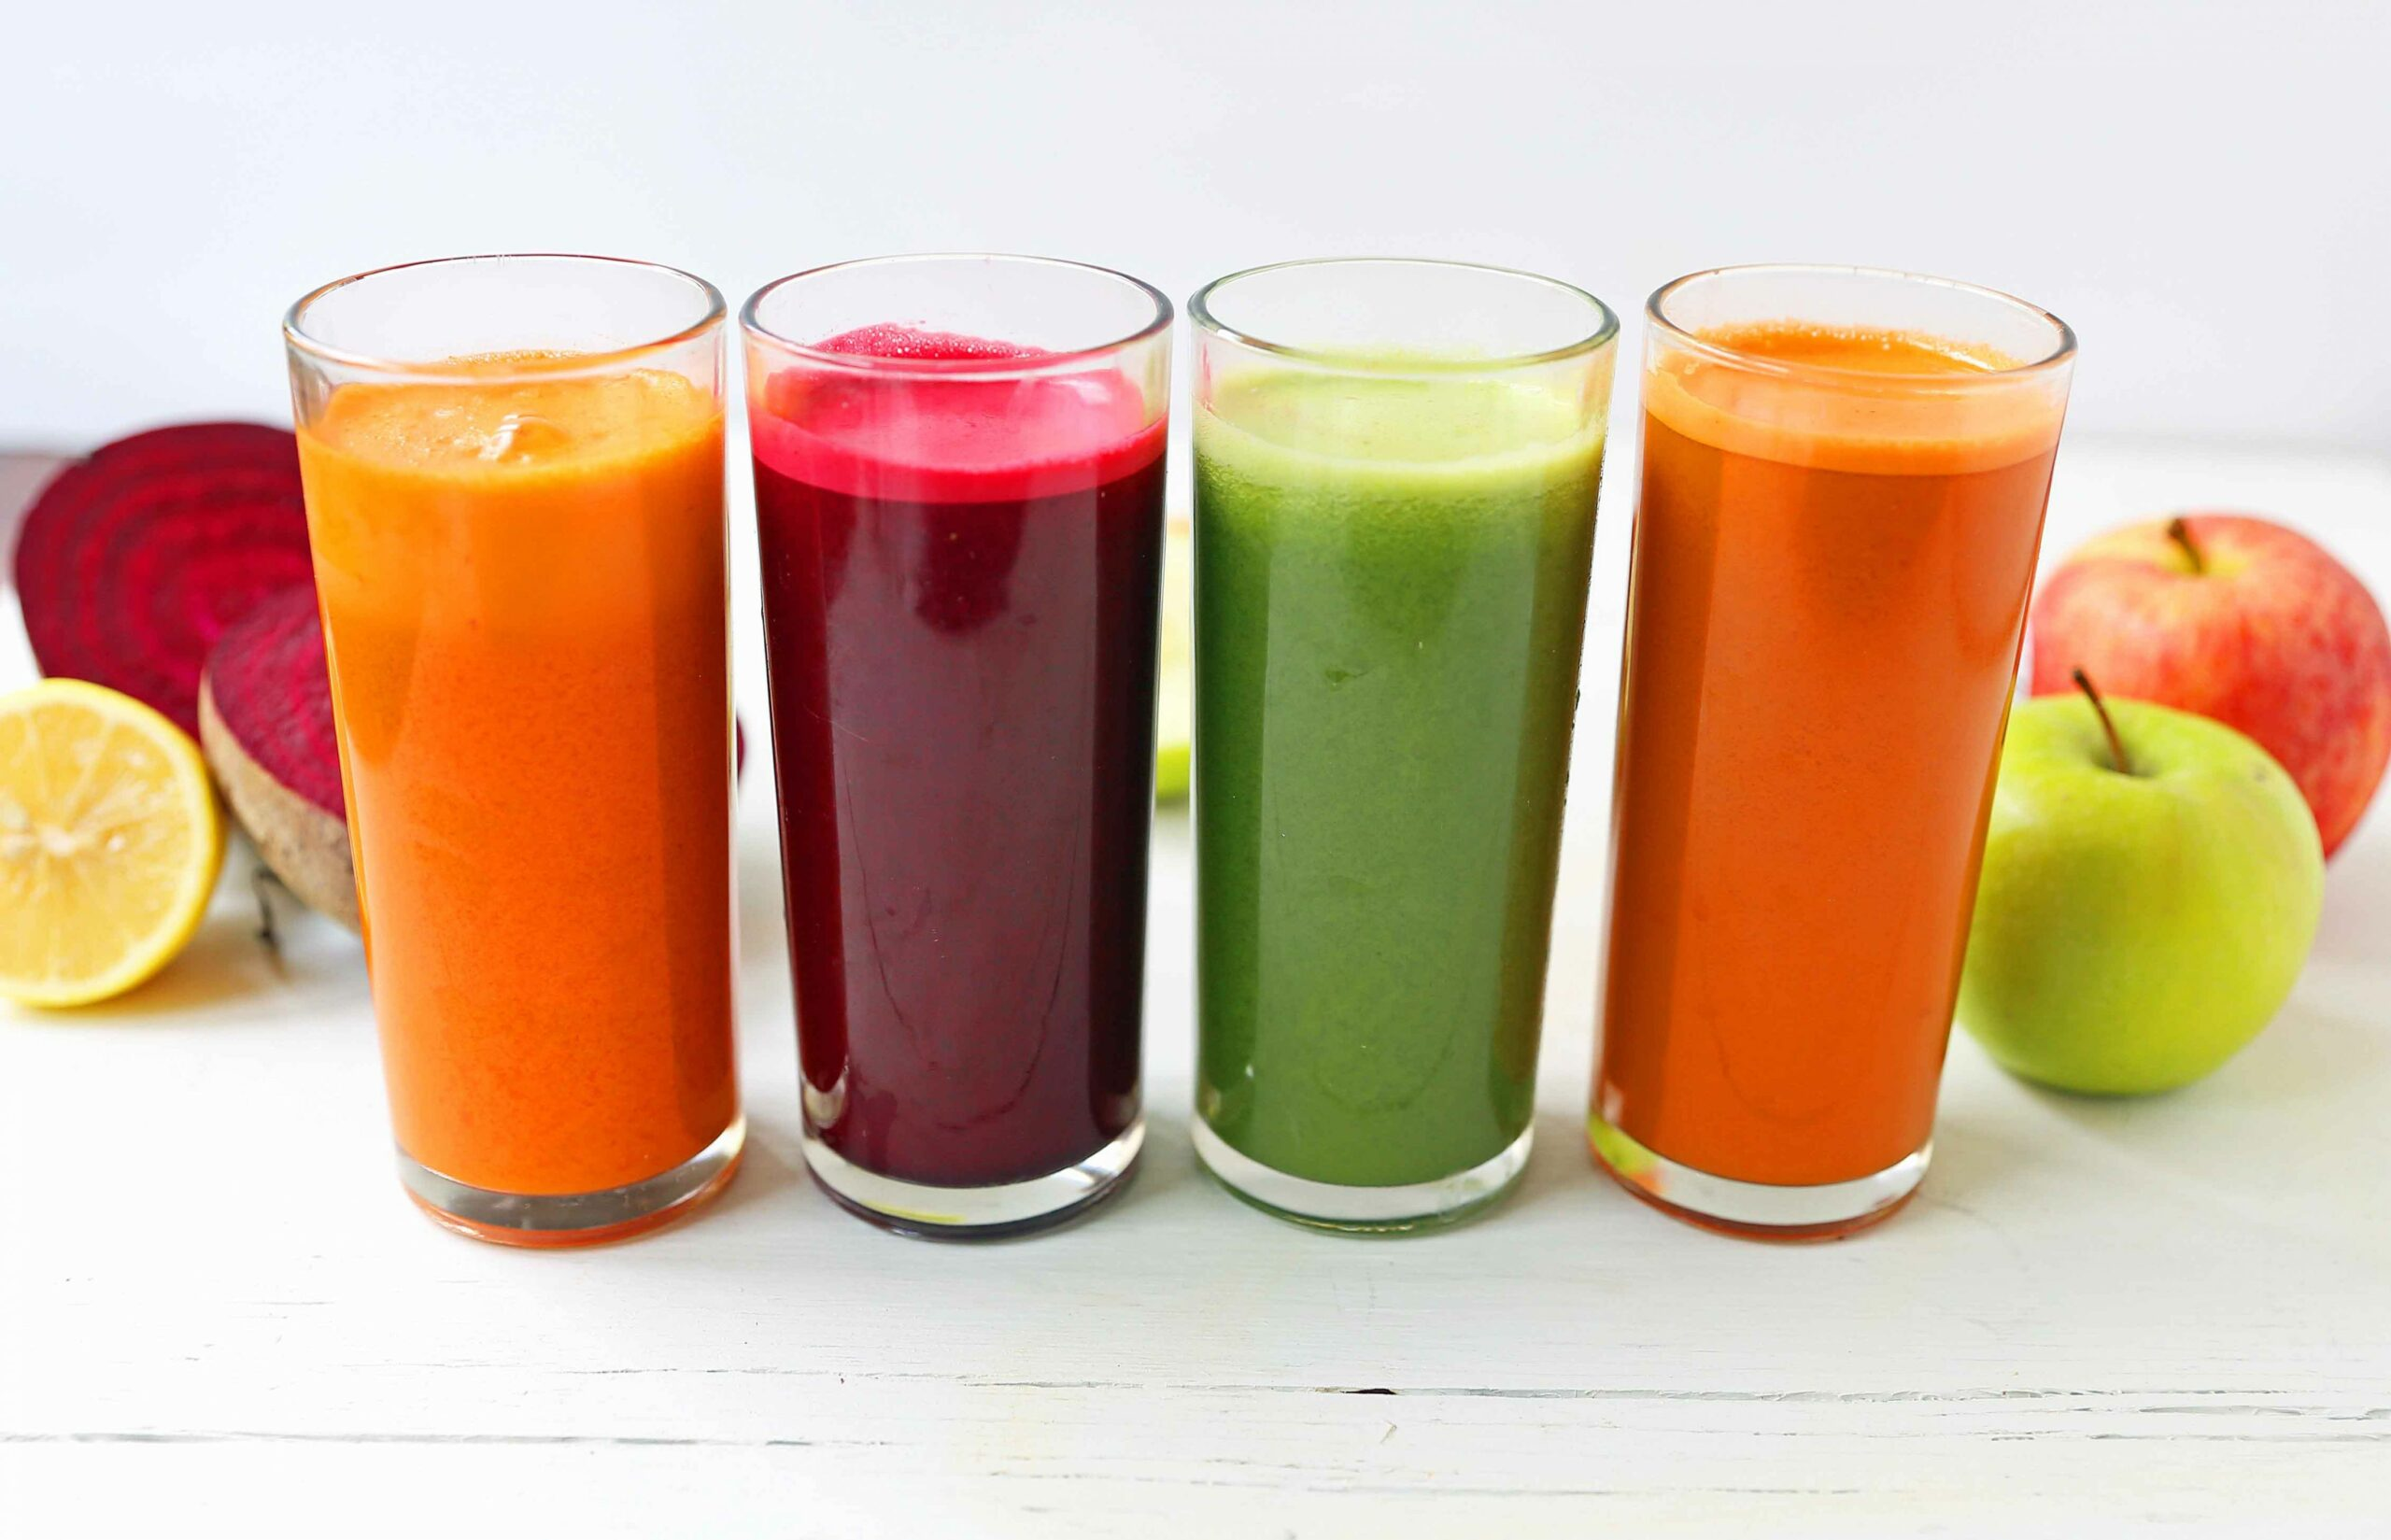 Healthy Juice Cleanse Recipes - Juice Recipes For Weight Loss Fasting